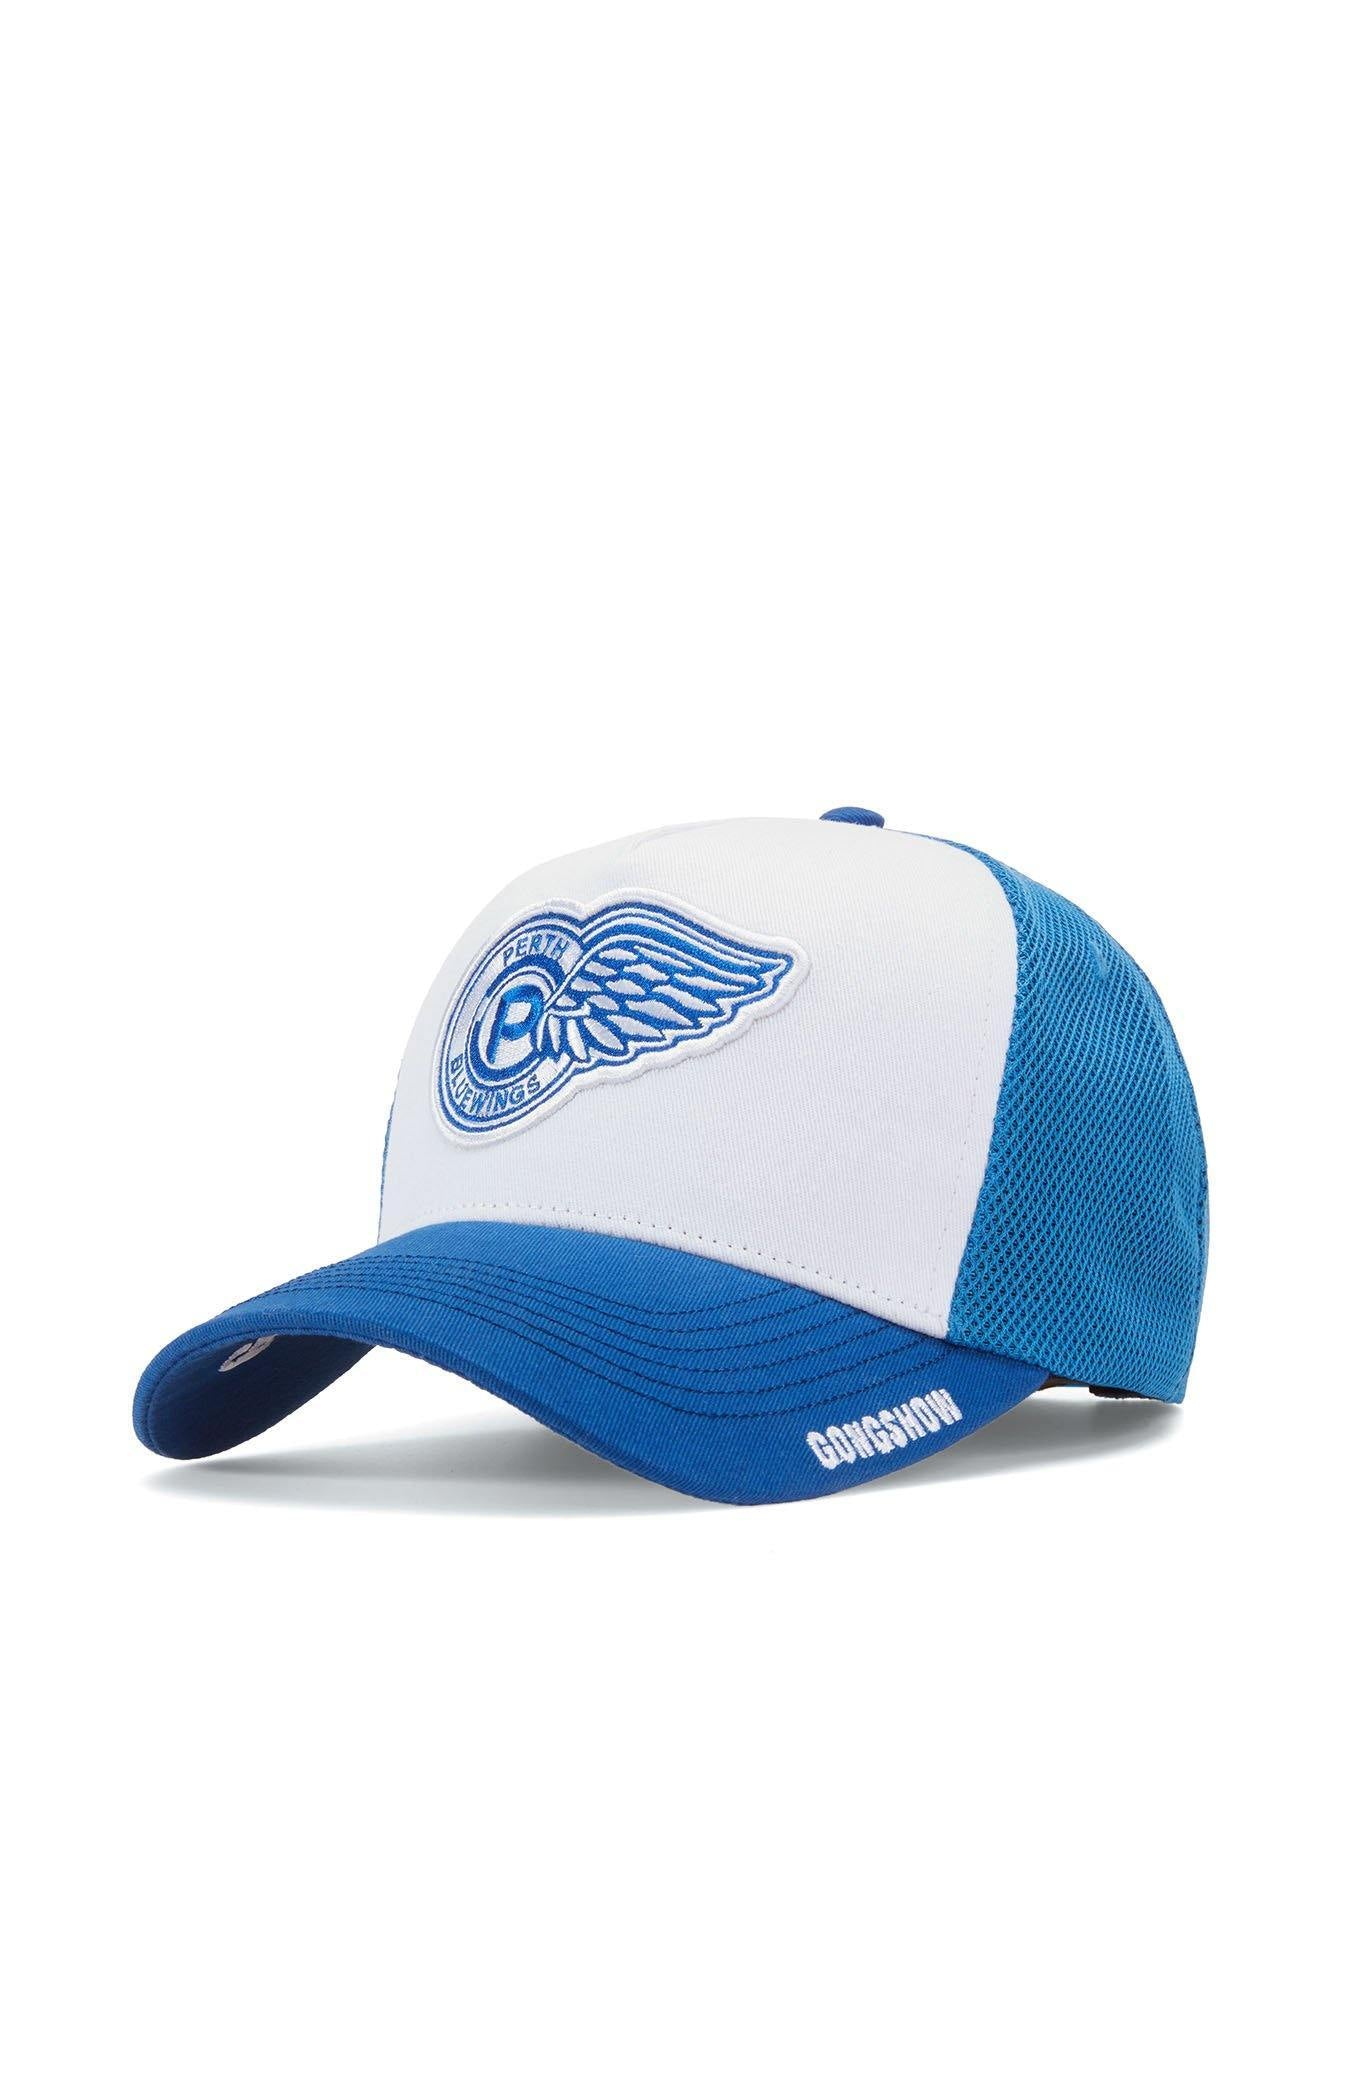 b6f35c4c Perth Blue Wings CCHL 2 Mens White GONGSHOW Hockey Hat – GONGSHOW USA